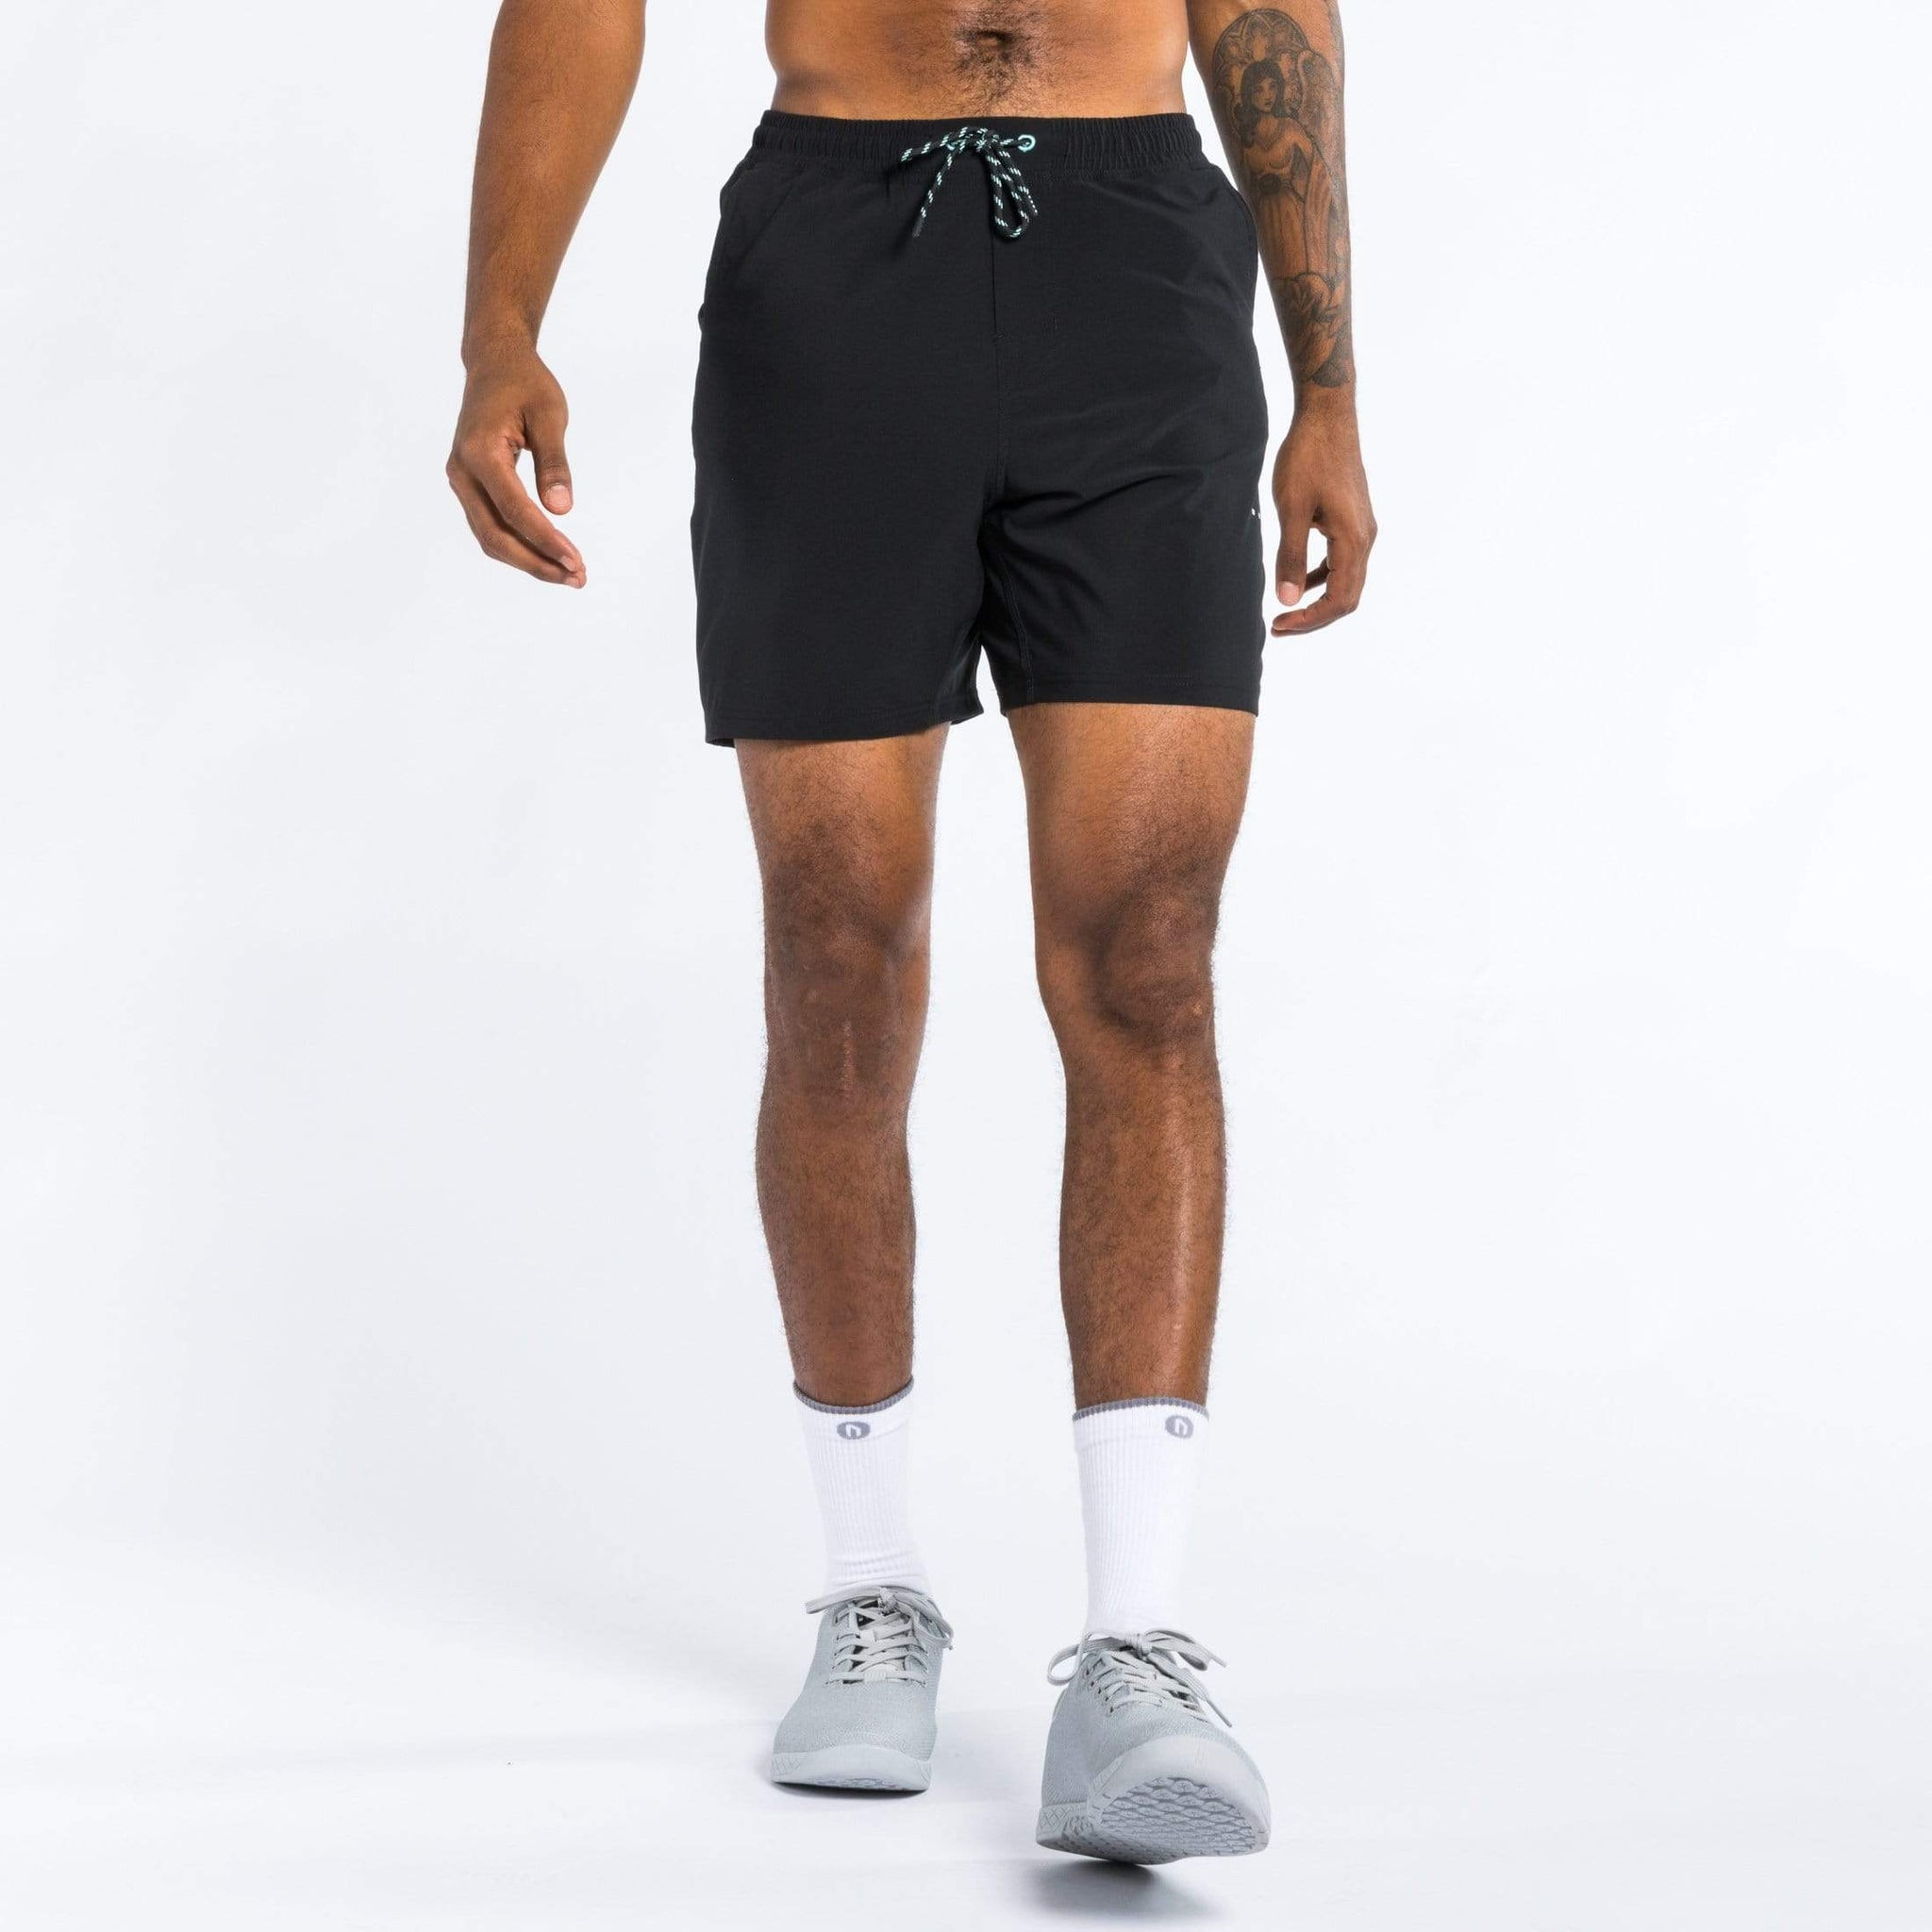 RPM Training Shorts RPM Training Ridge Training Short 7""